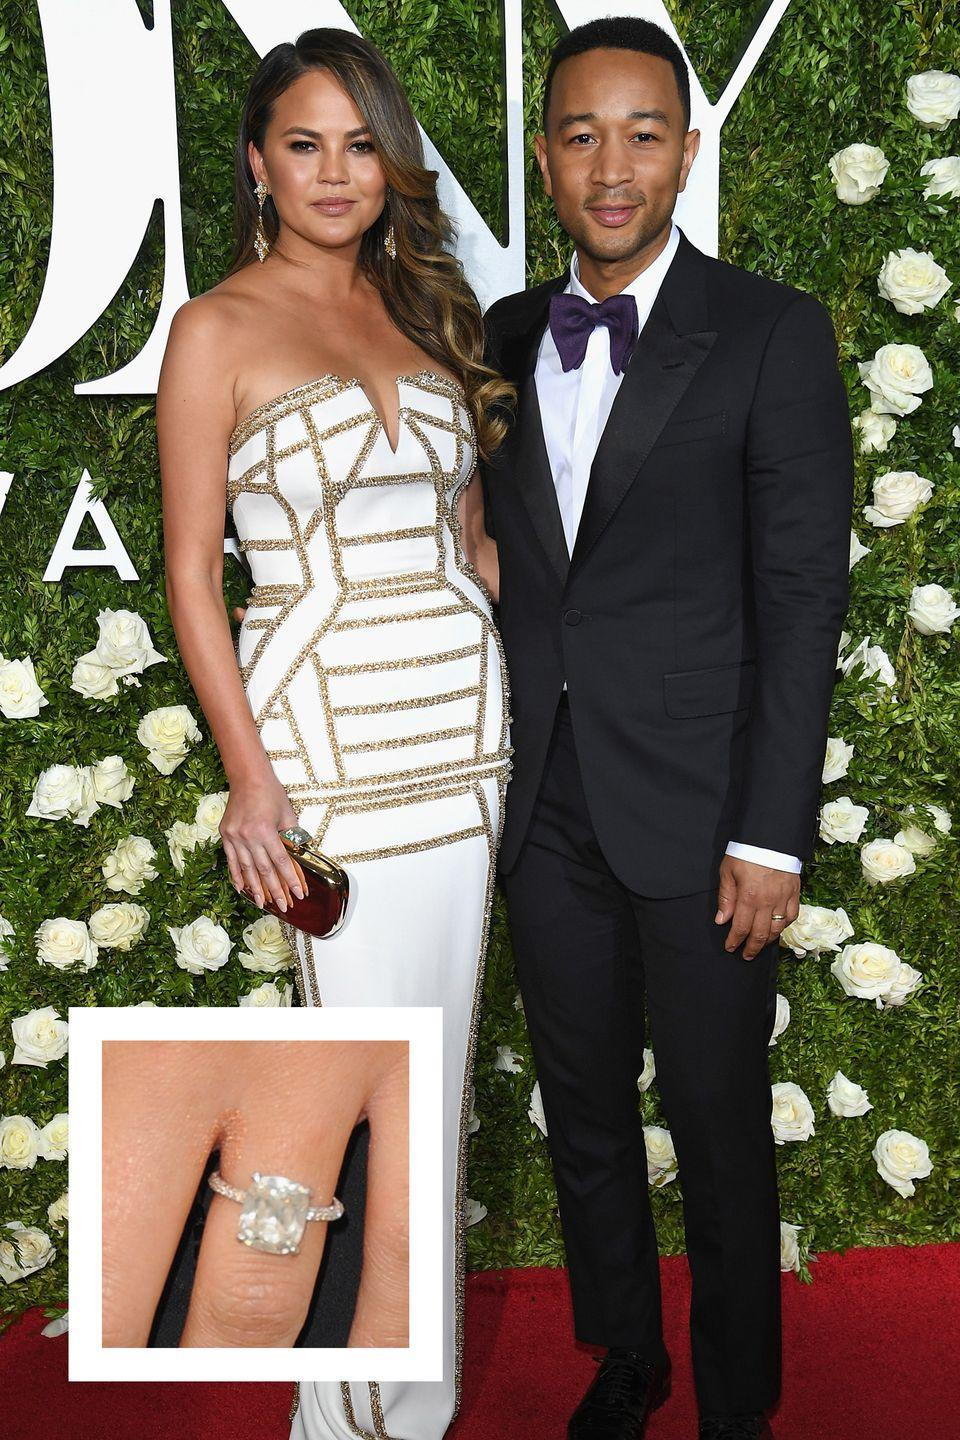 <p>In late 2011, musician John Legend proposed to model Chrissy Teigen with a dazzling cushion cut diamond on a pavé eternity band. </p>